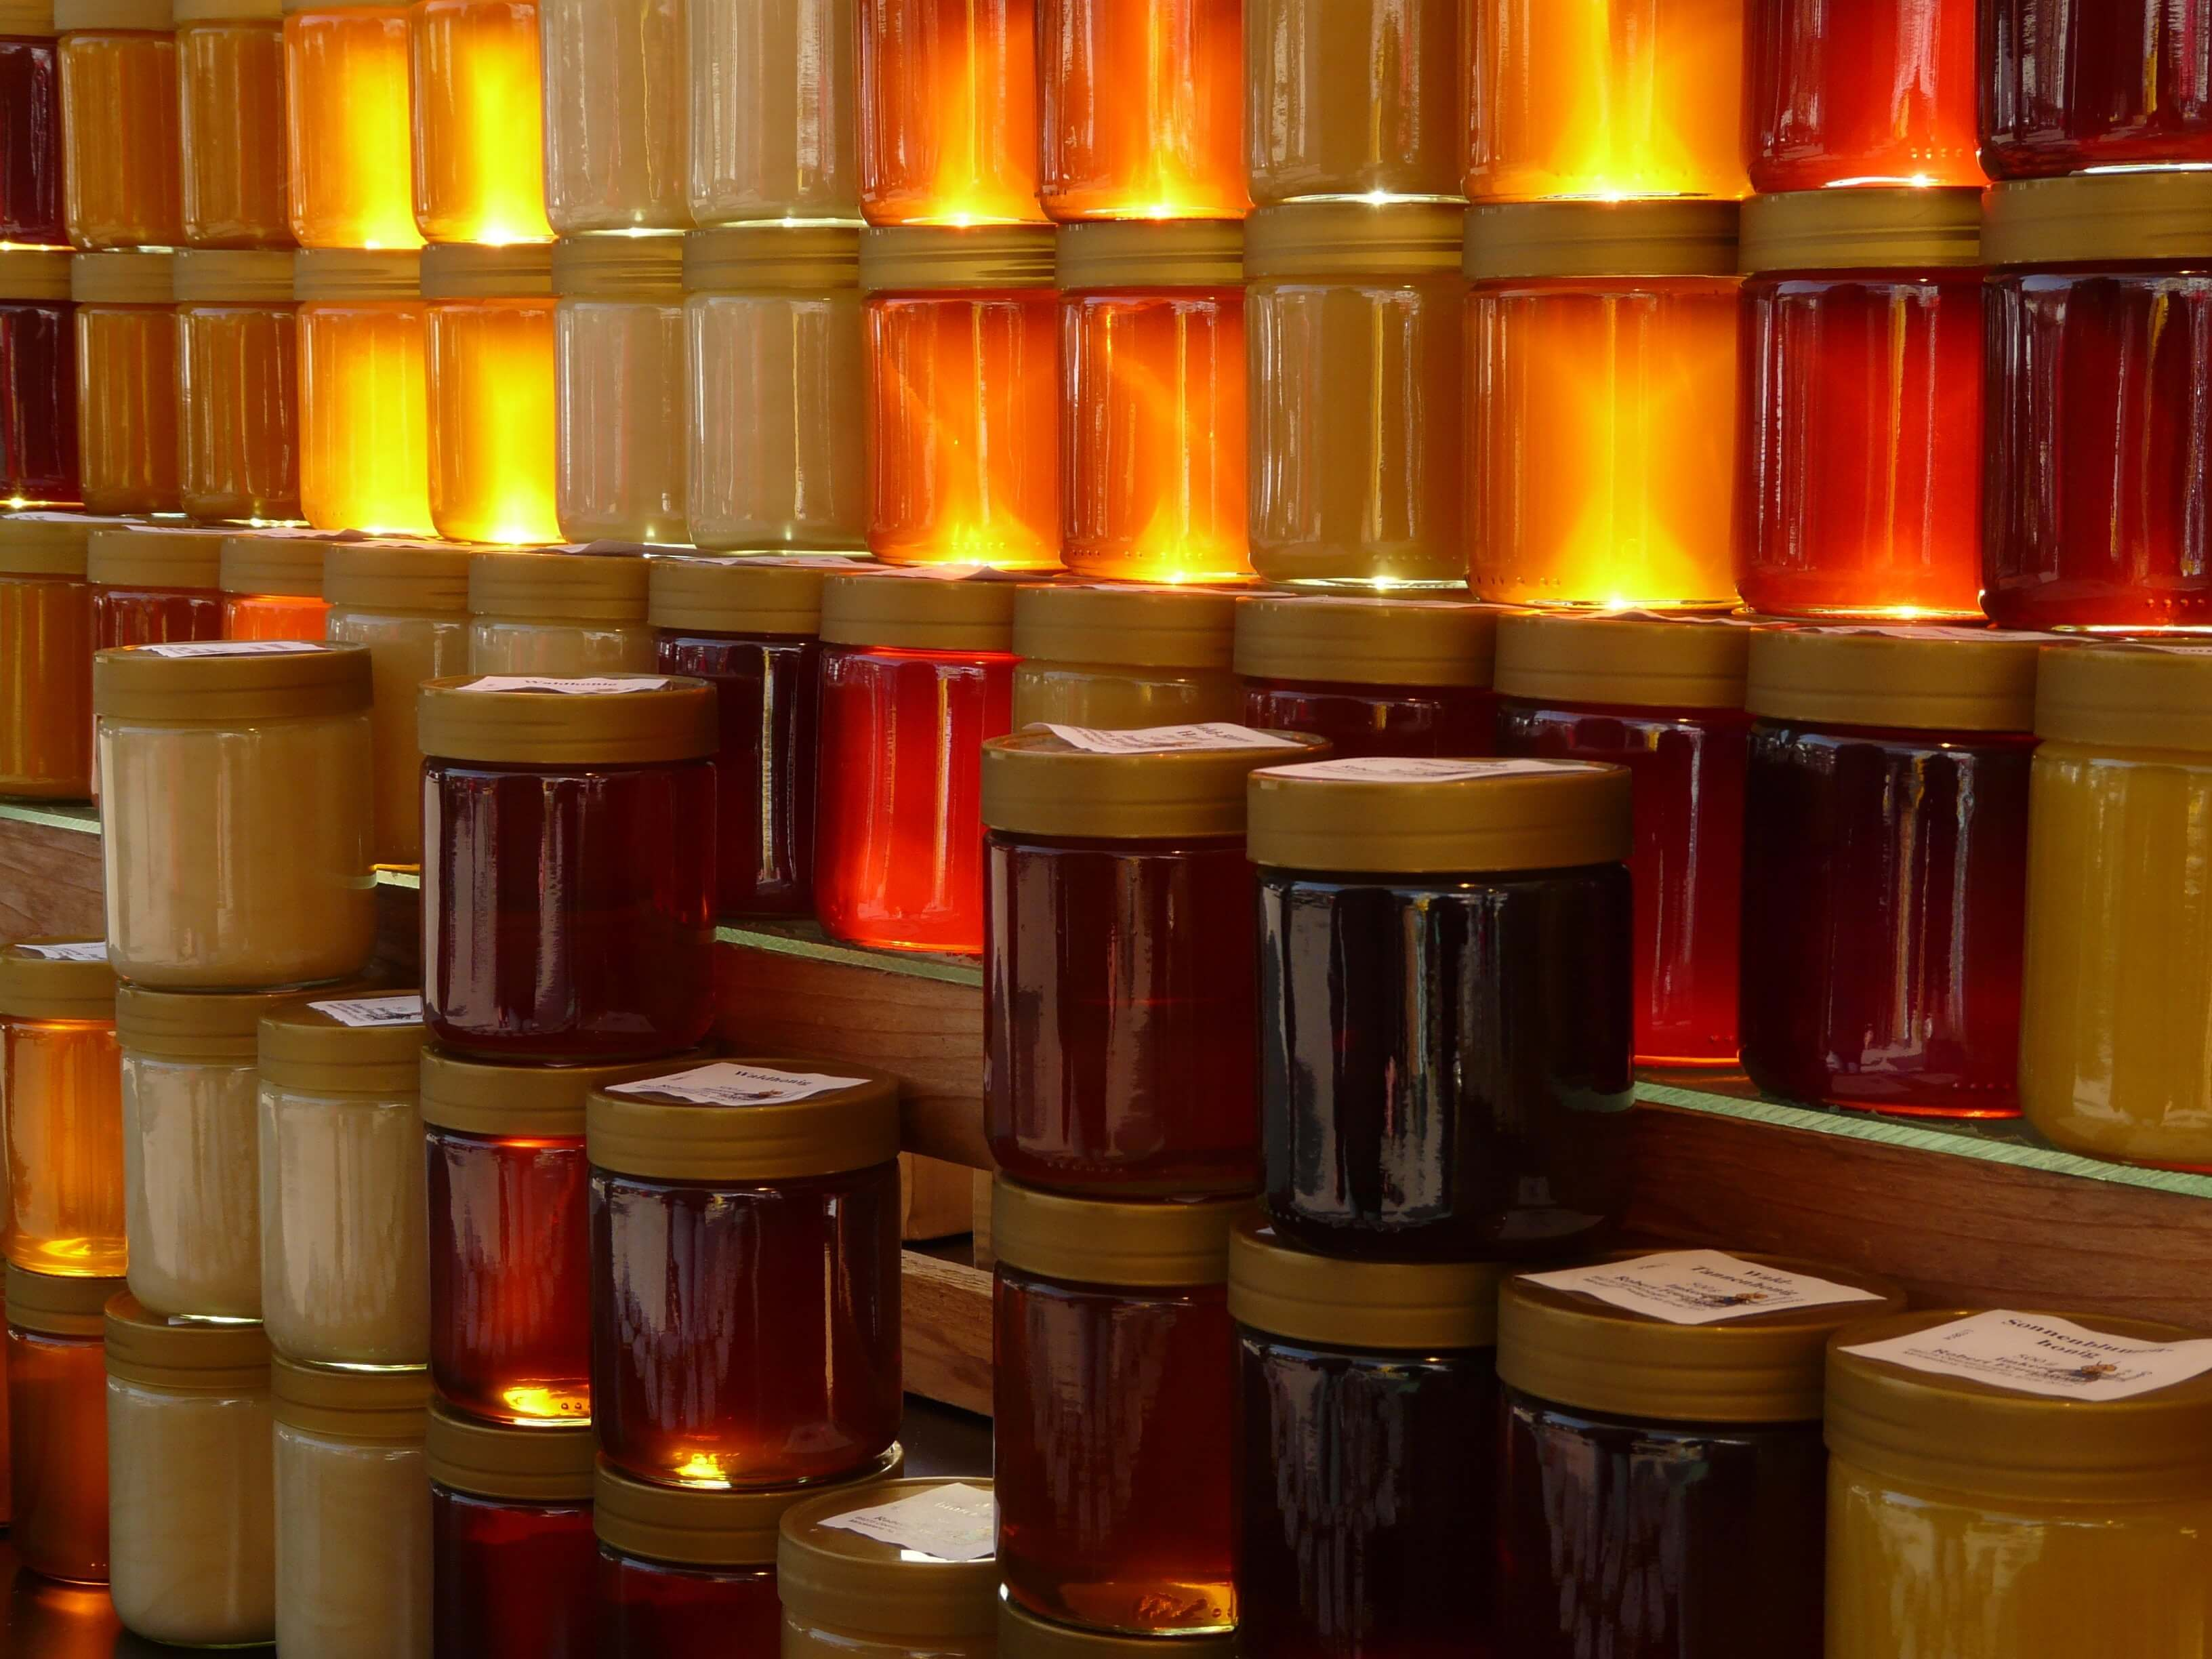 small food manufacturing business ideas